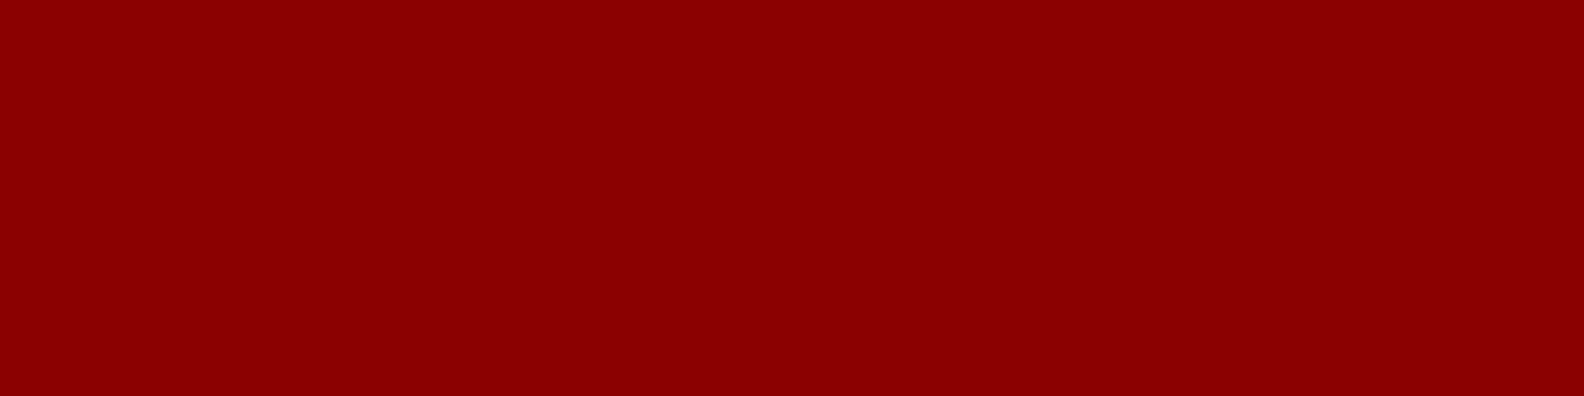 1584x396 Dark Red Solid Color Background